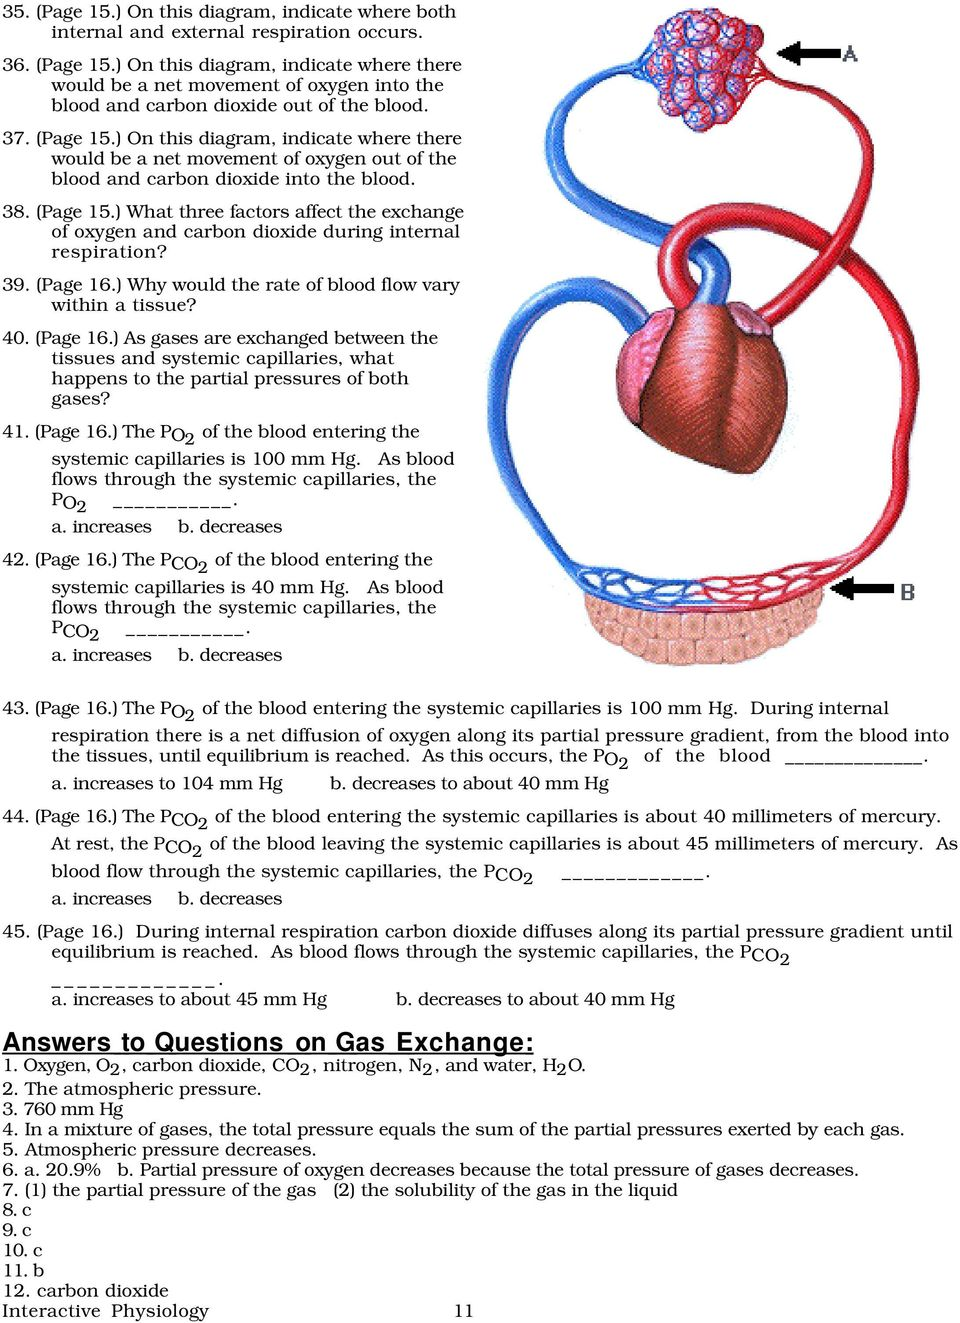 39. (Page 16.) Why would the rate of blood flow vary within a tissue? 40. (Page 16.) As gases are exchanged between the tissues and systemic capillaries, what happens to the partial pressures of both gases?